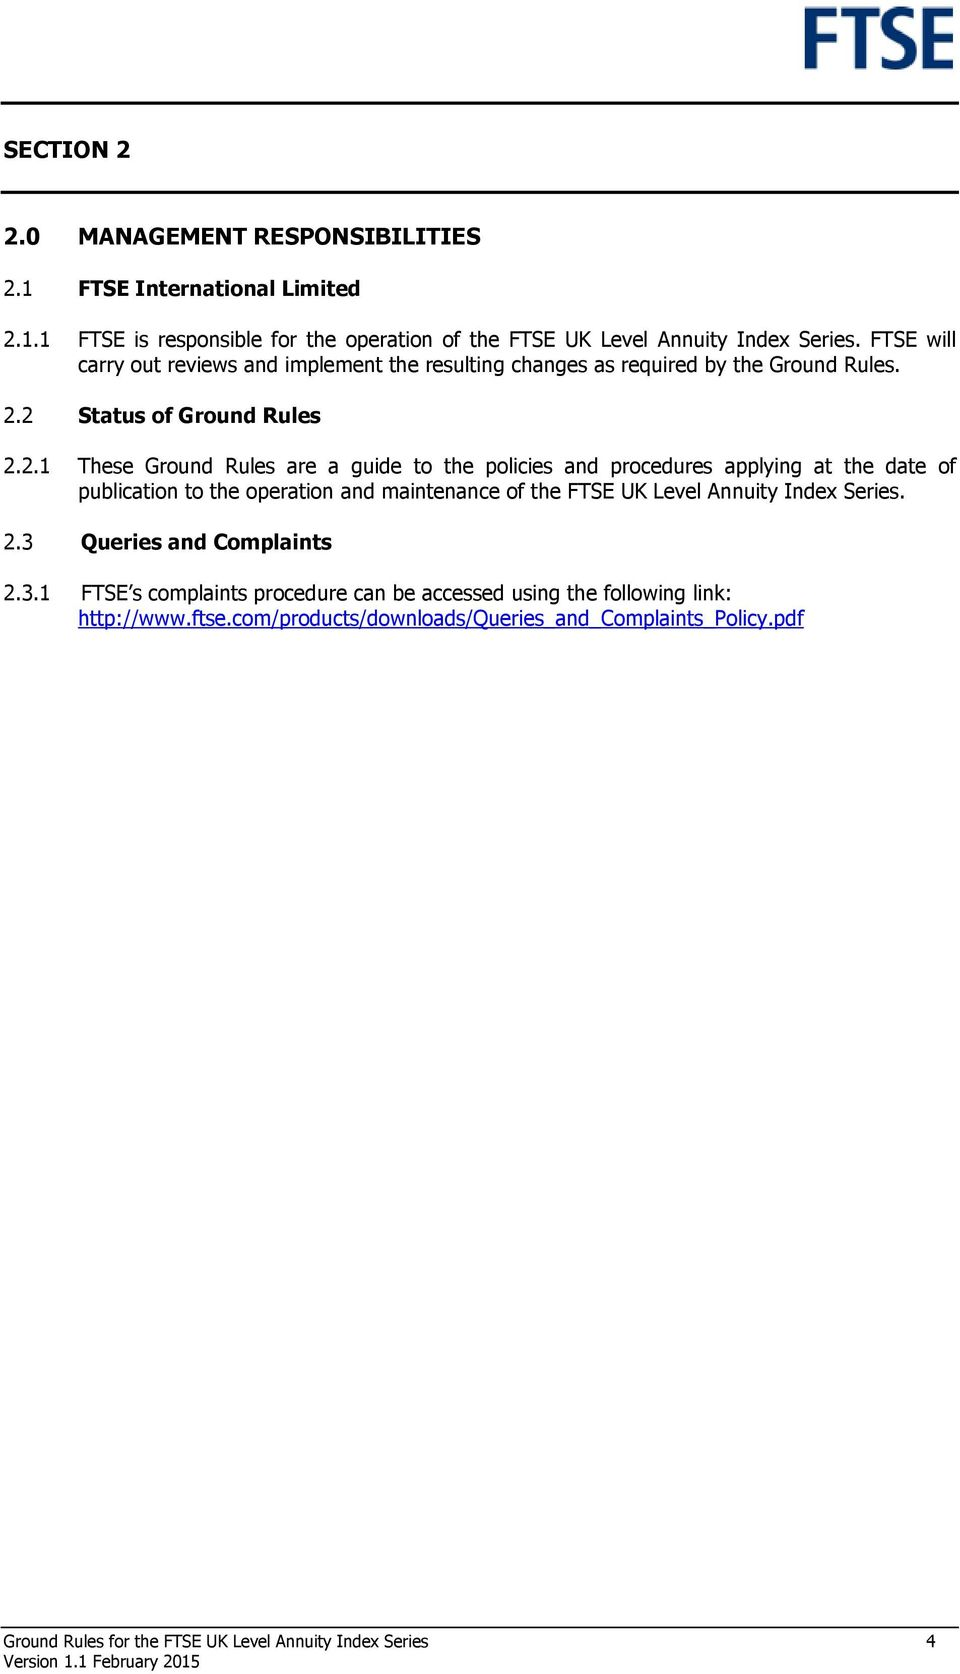 2 Status of Ground Rules 2.2.1 These Ground Rules are a guide to the policies and procedures applying at the date of publication to the operation and maintenance of the FTSE